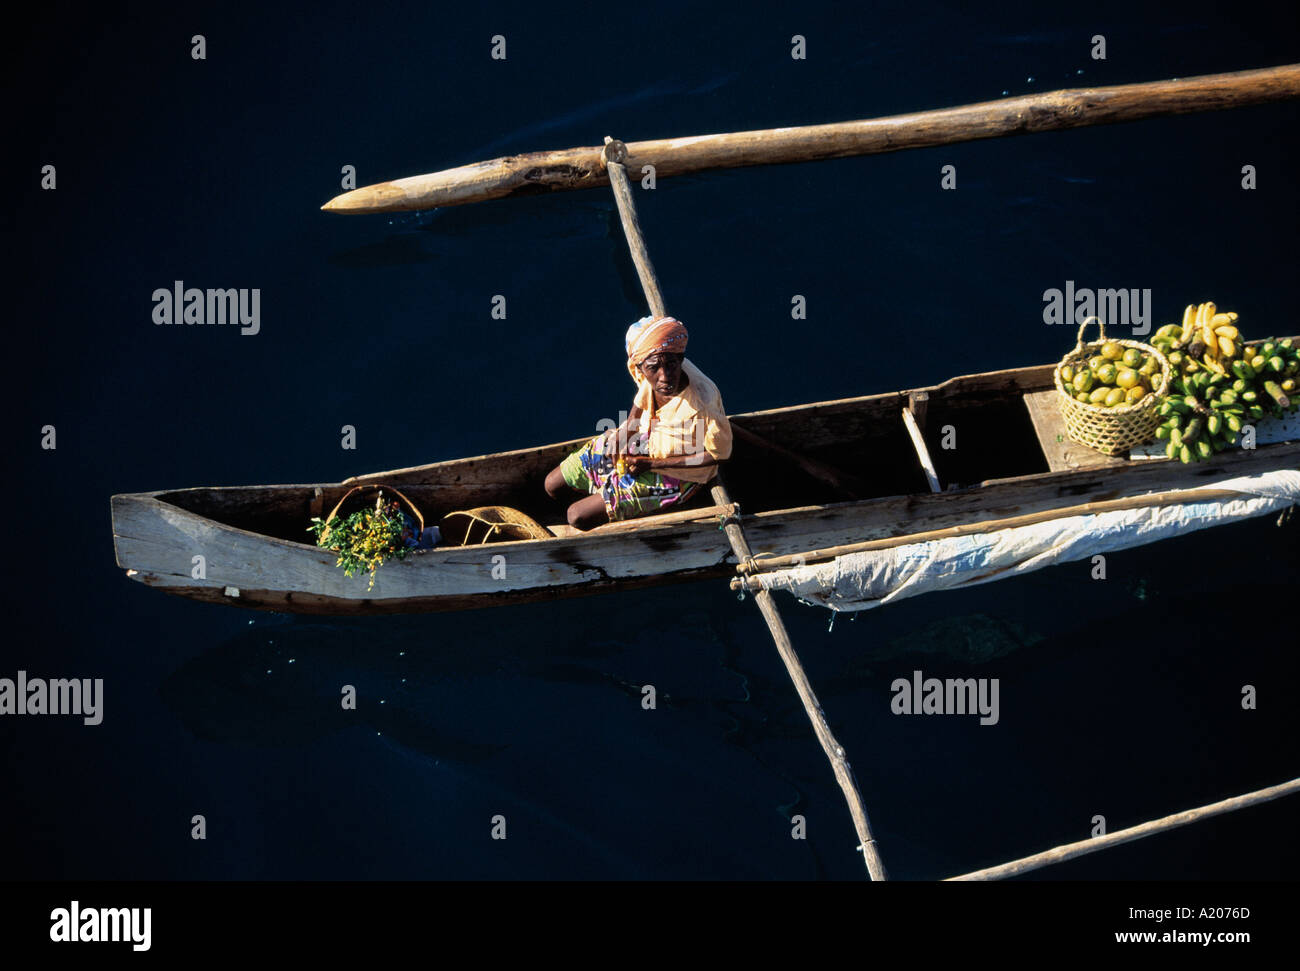 A local fishing boat - Stock Image